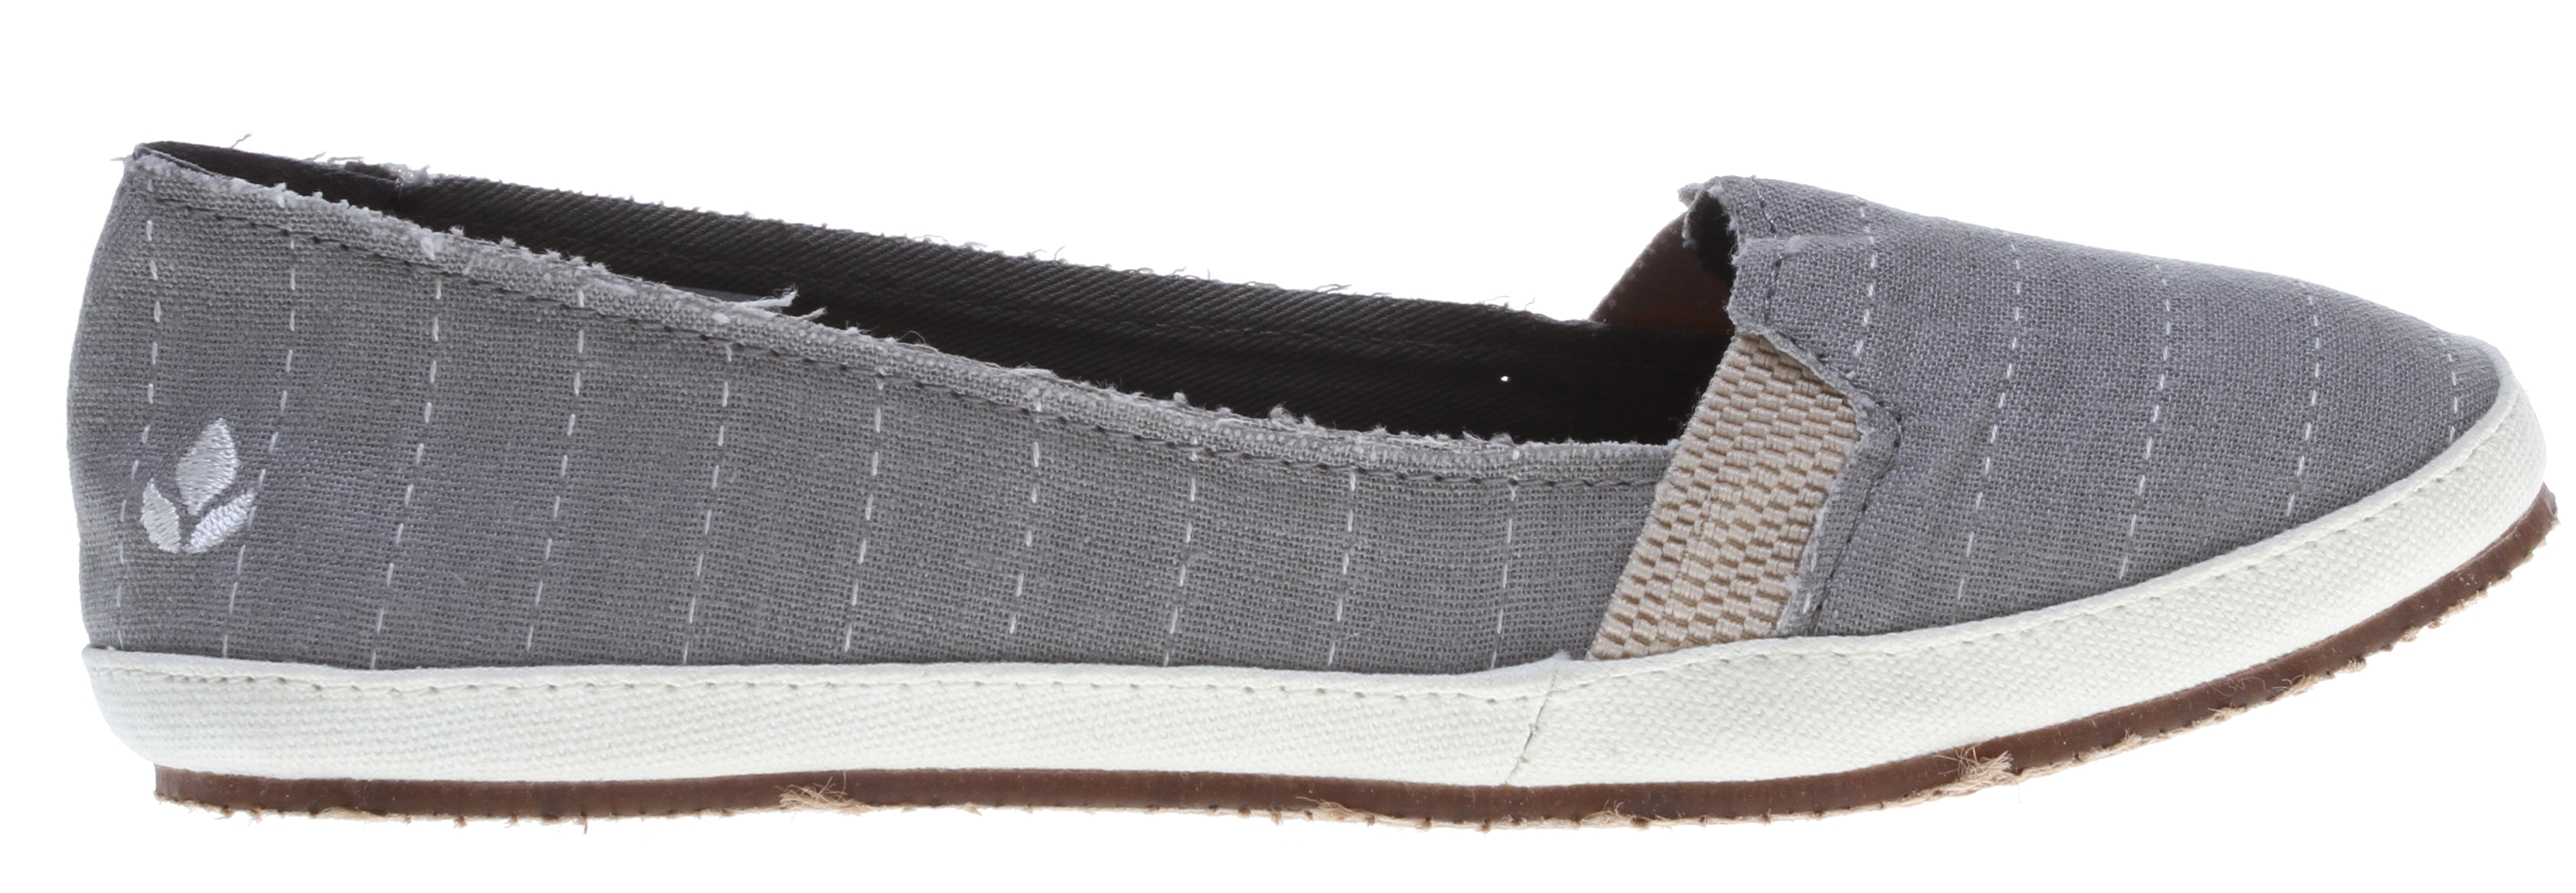 Surf Key Features of the Reef Summer Shoes Grey Stripe: Canvas upper in a casual flat slip-on style with a round toe Embroidered logo detail at heel Slip-on construction Fabric lining and quilted foam insole Anatomical arch support Durable rubber outsole - $34.95